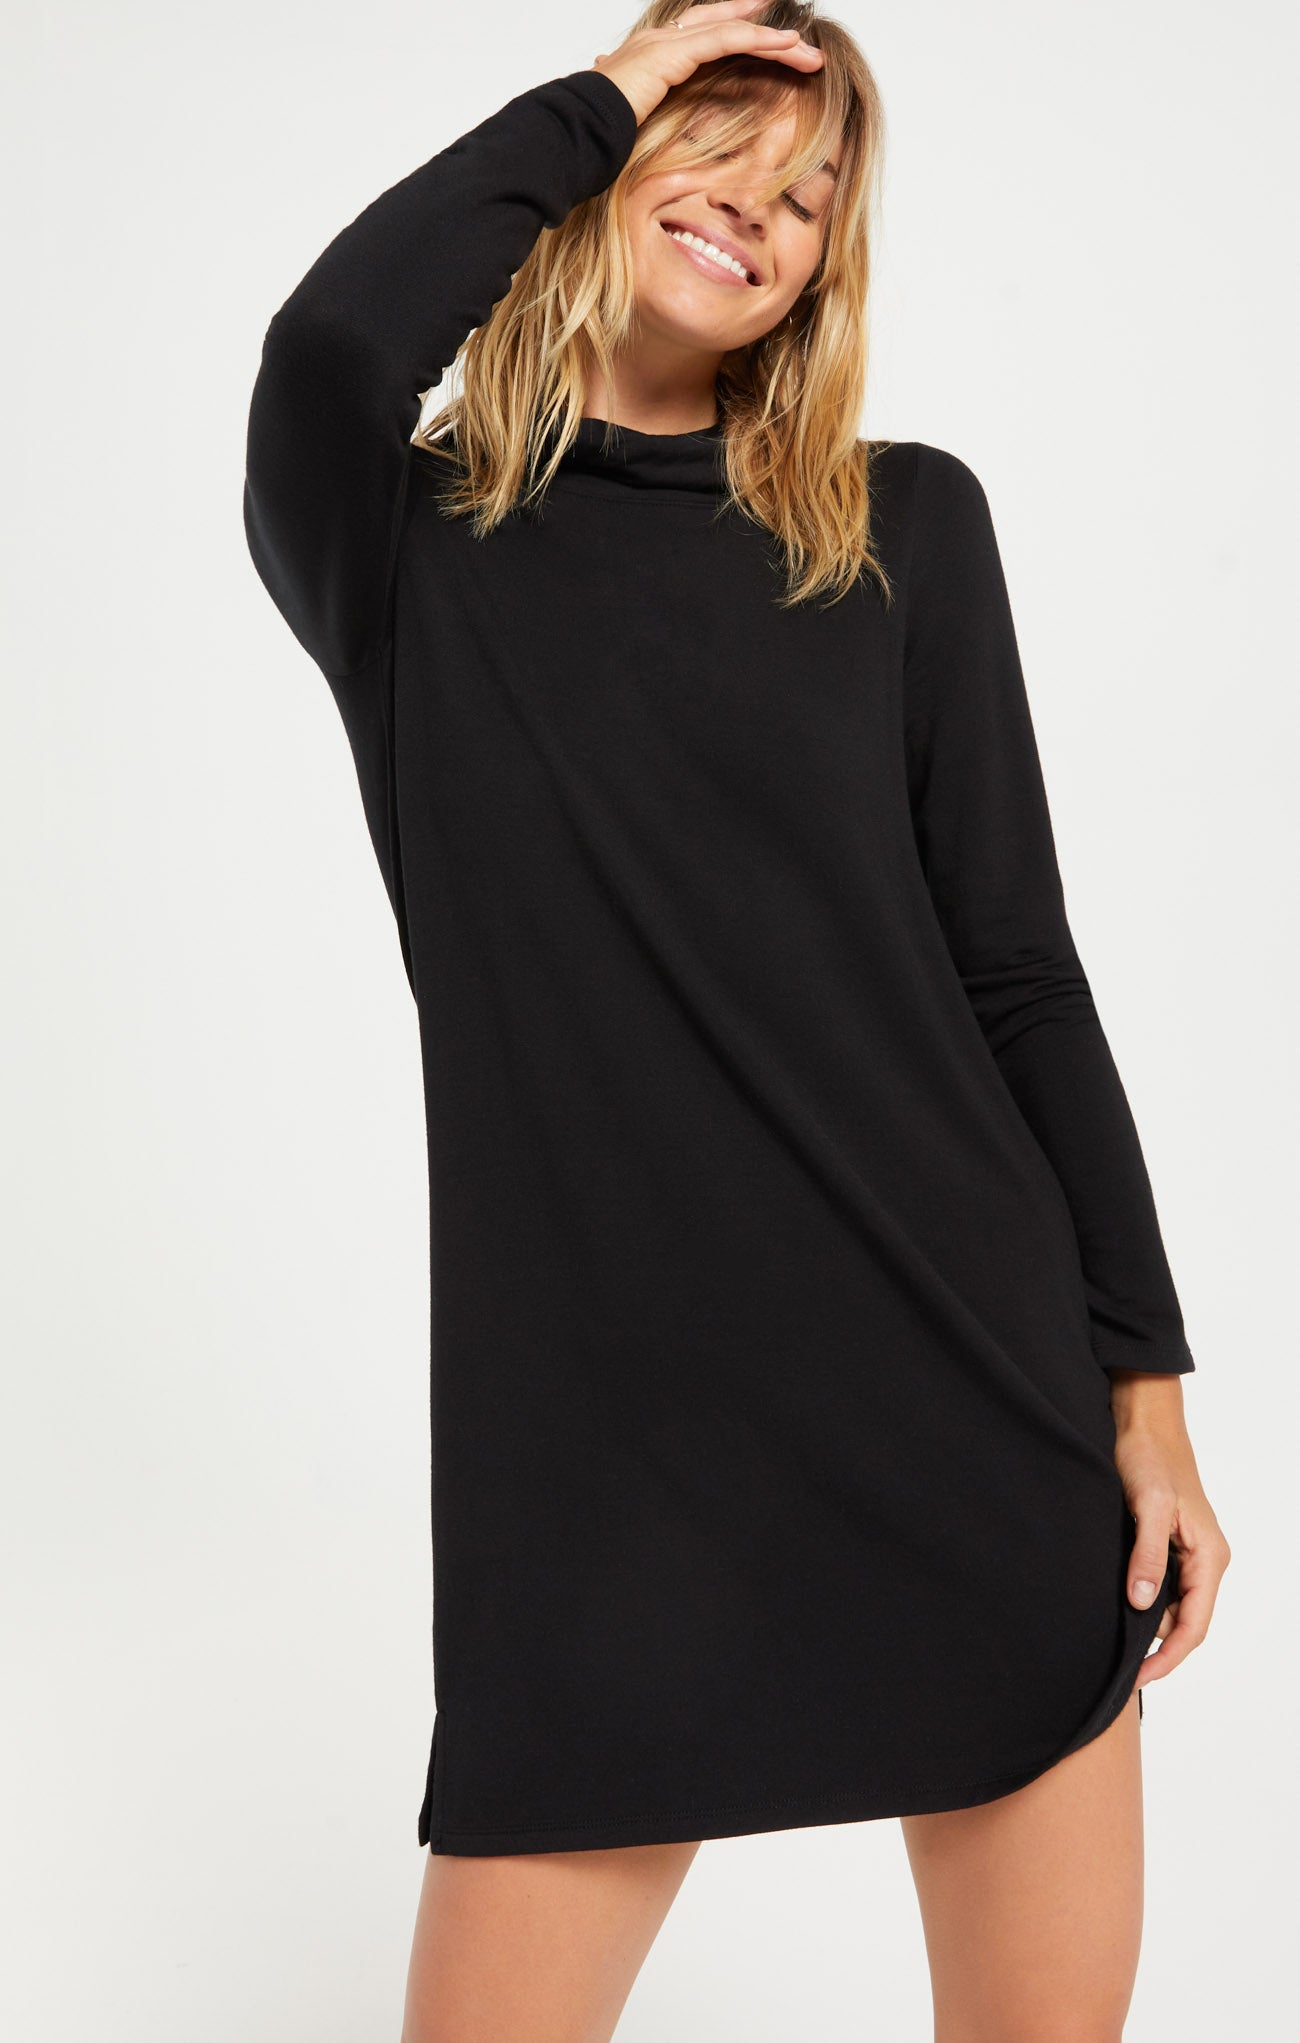 Dresses The Premium Fleece Turtle Neck Dress Black